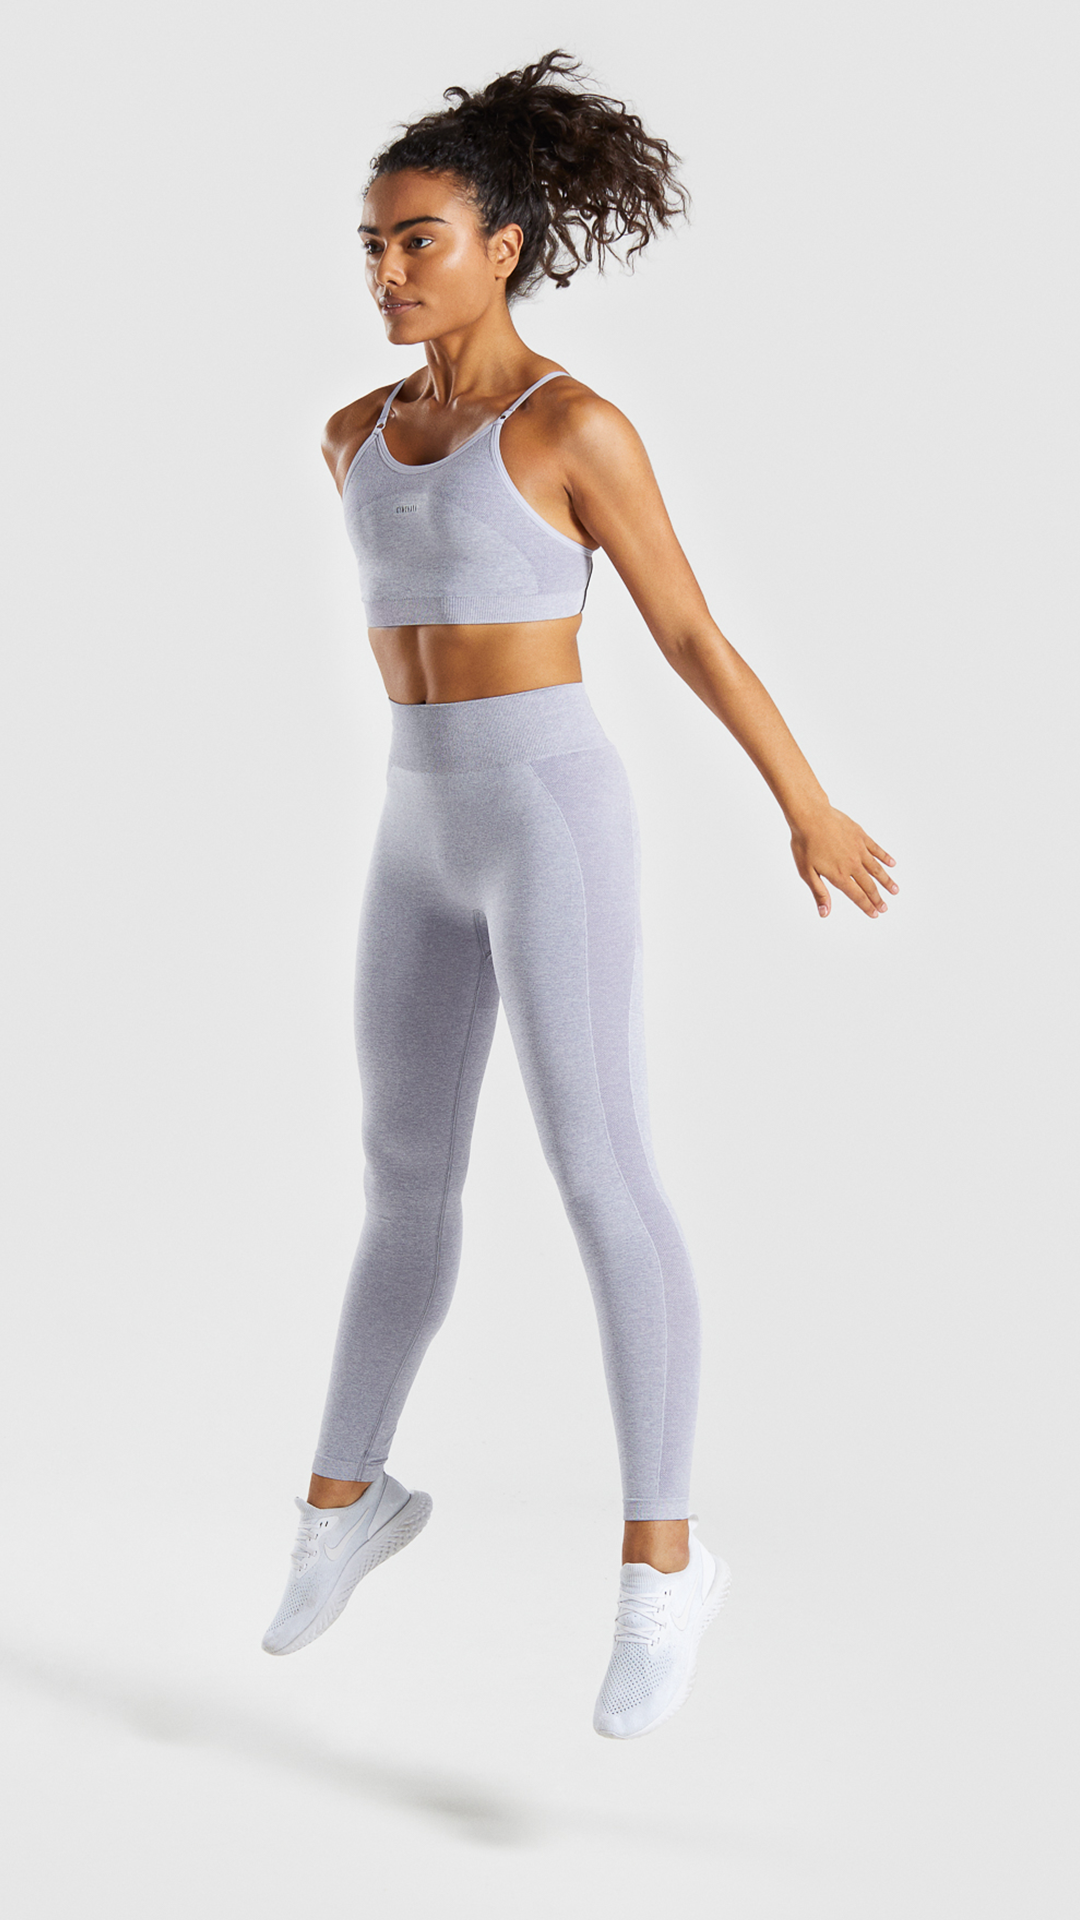 bbd38794f008c The High Waisted Flex Leggings and Sports Bra. Built for strengthening your  workouts and powering up your PB's.#Gymshark #Gym #Sweat #Train #Perform ...